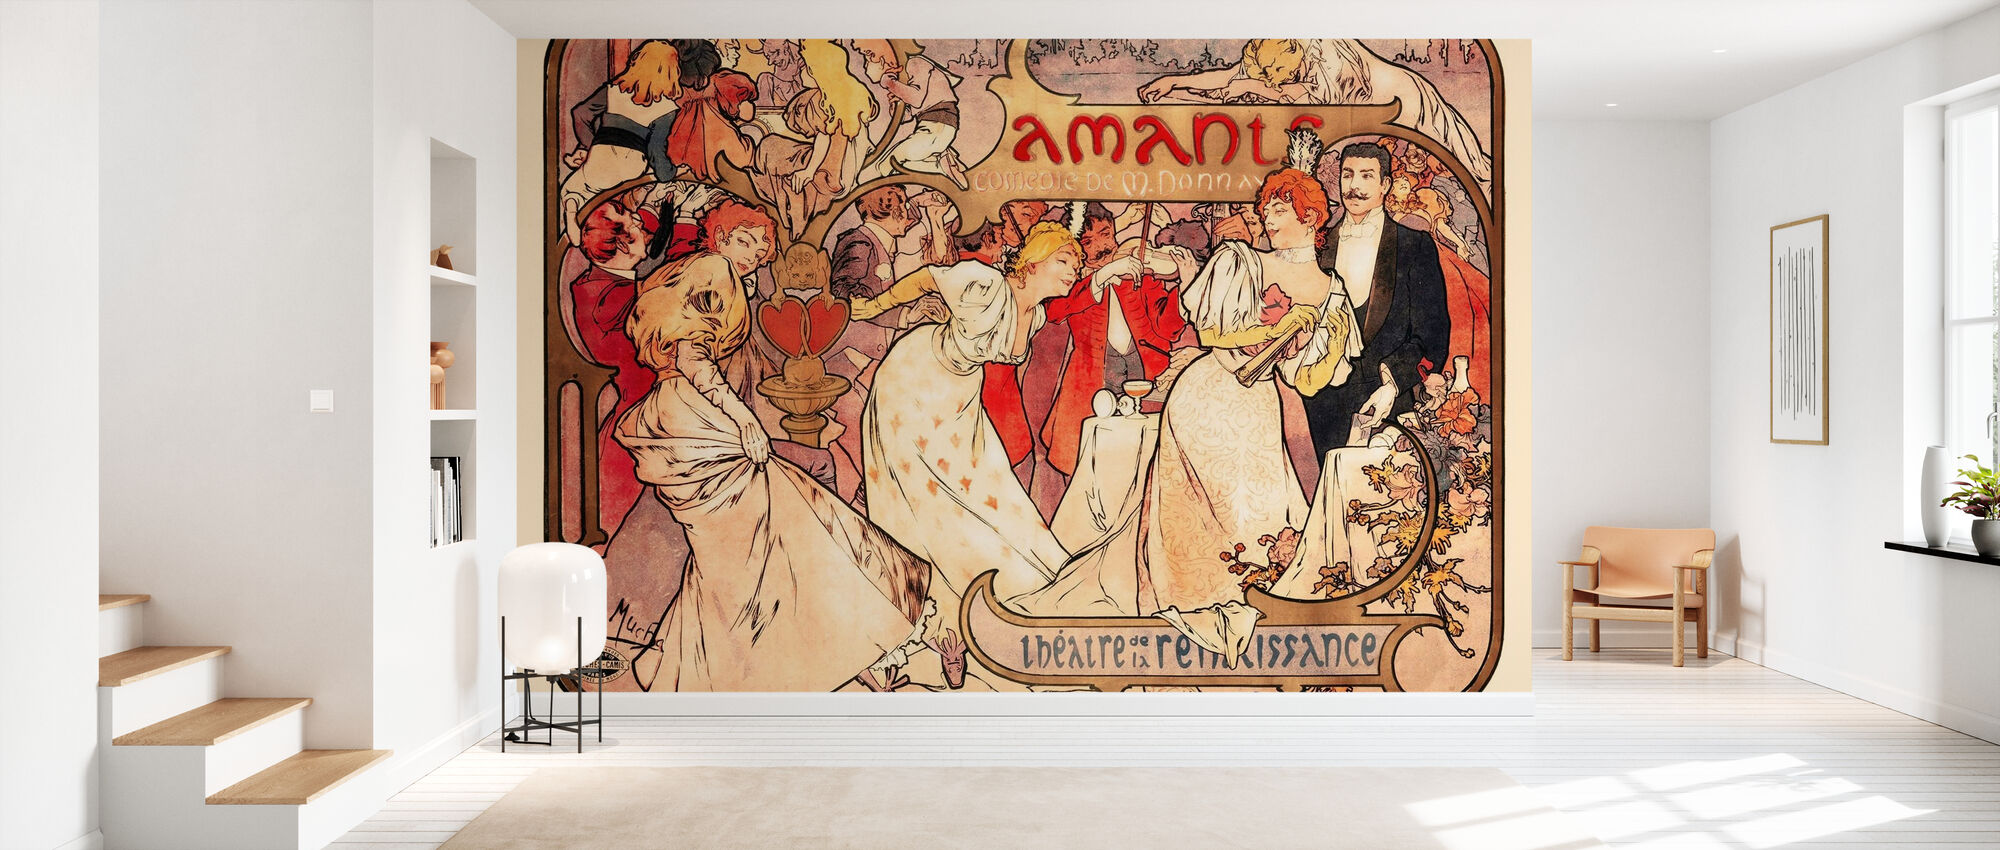 Alphonse Mucha - Amants Colour Litho - Wallpaper - Hallway